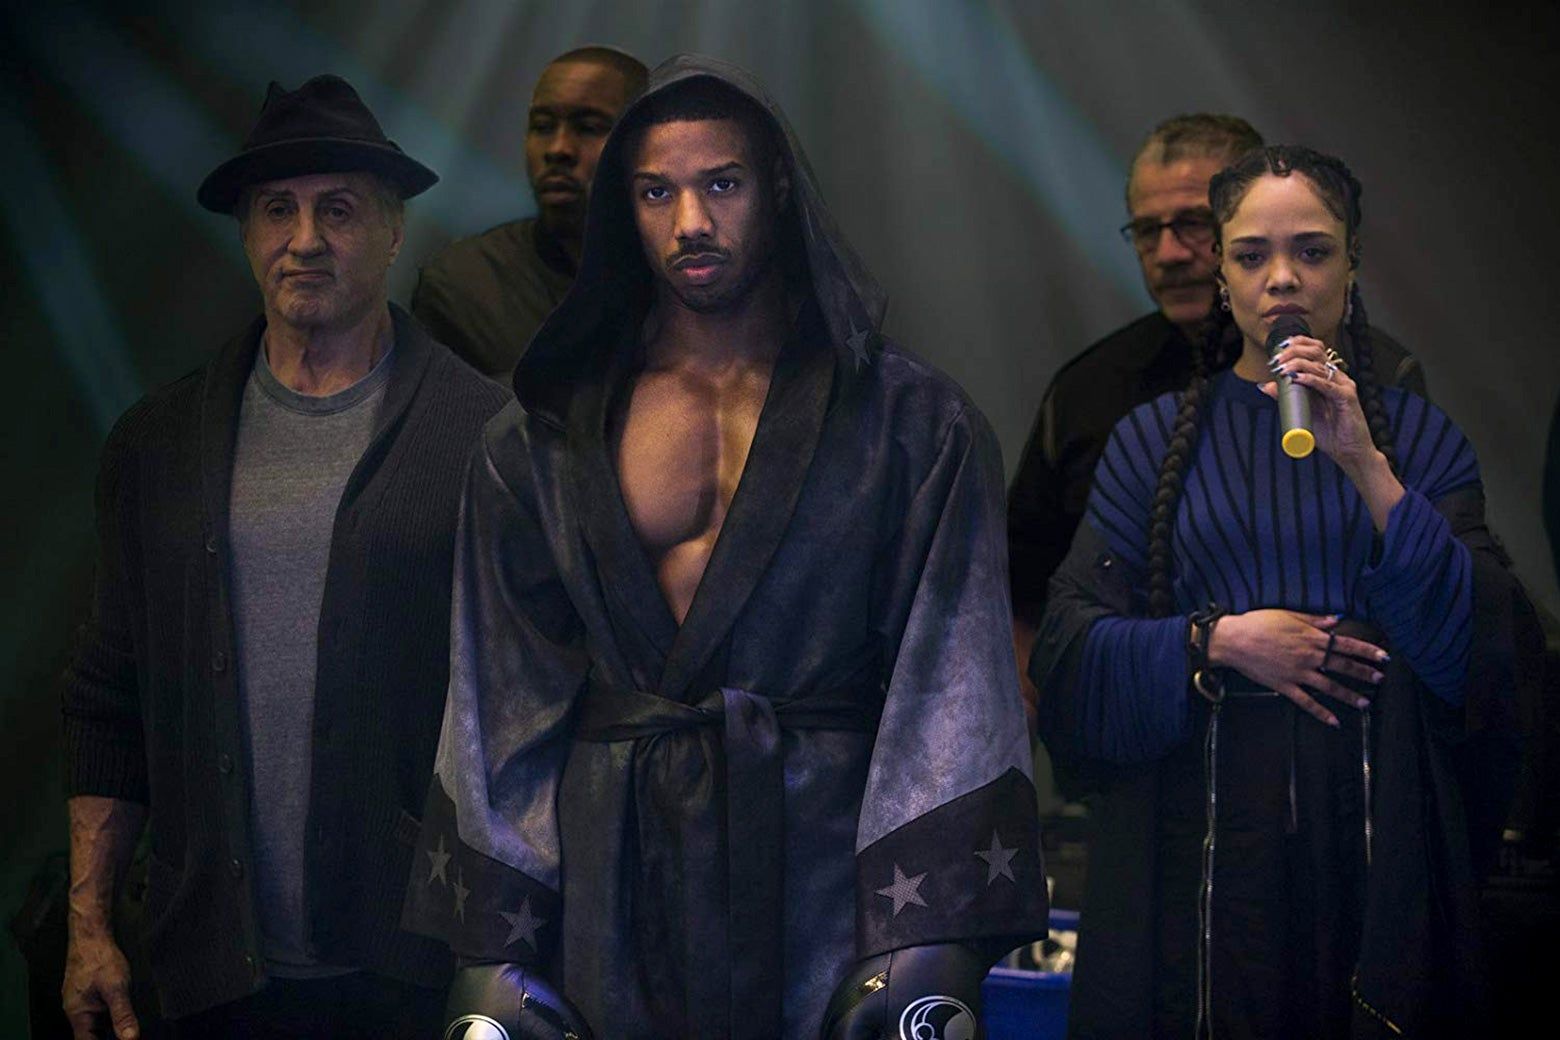 Sylvester Stallone, Michael B. Jordan, and Tessa Thompson in Creed II.